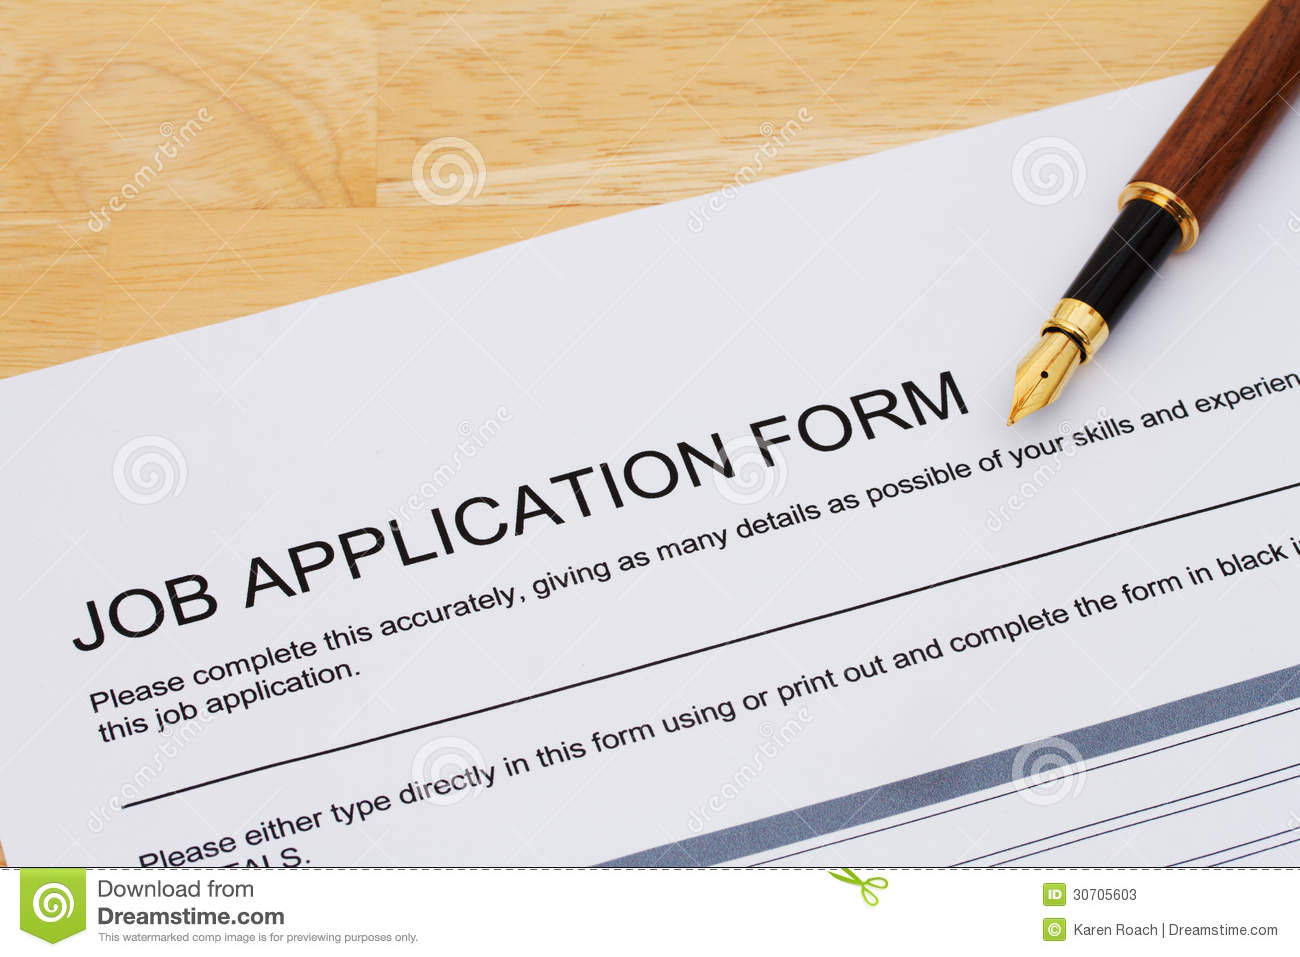 Applying for a job stock image. Image of resume, work - 30705603